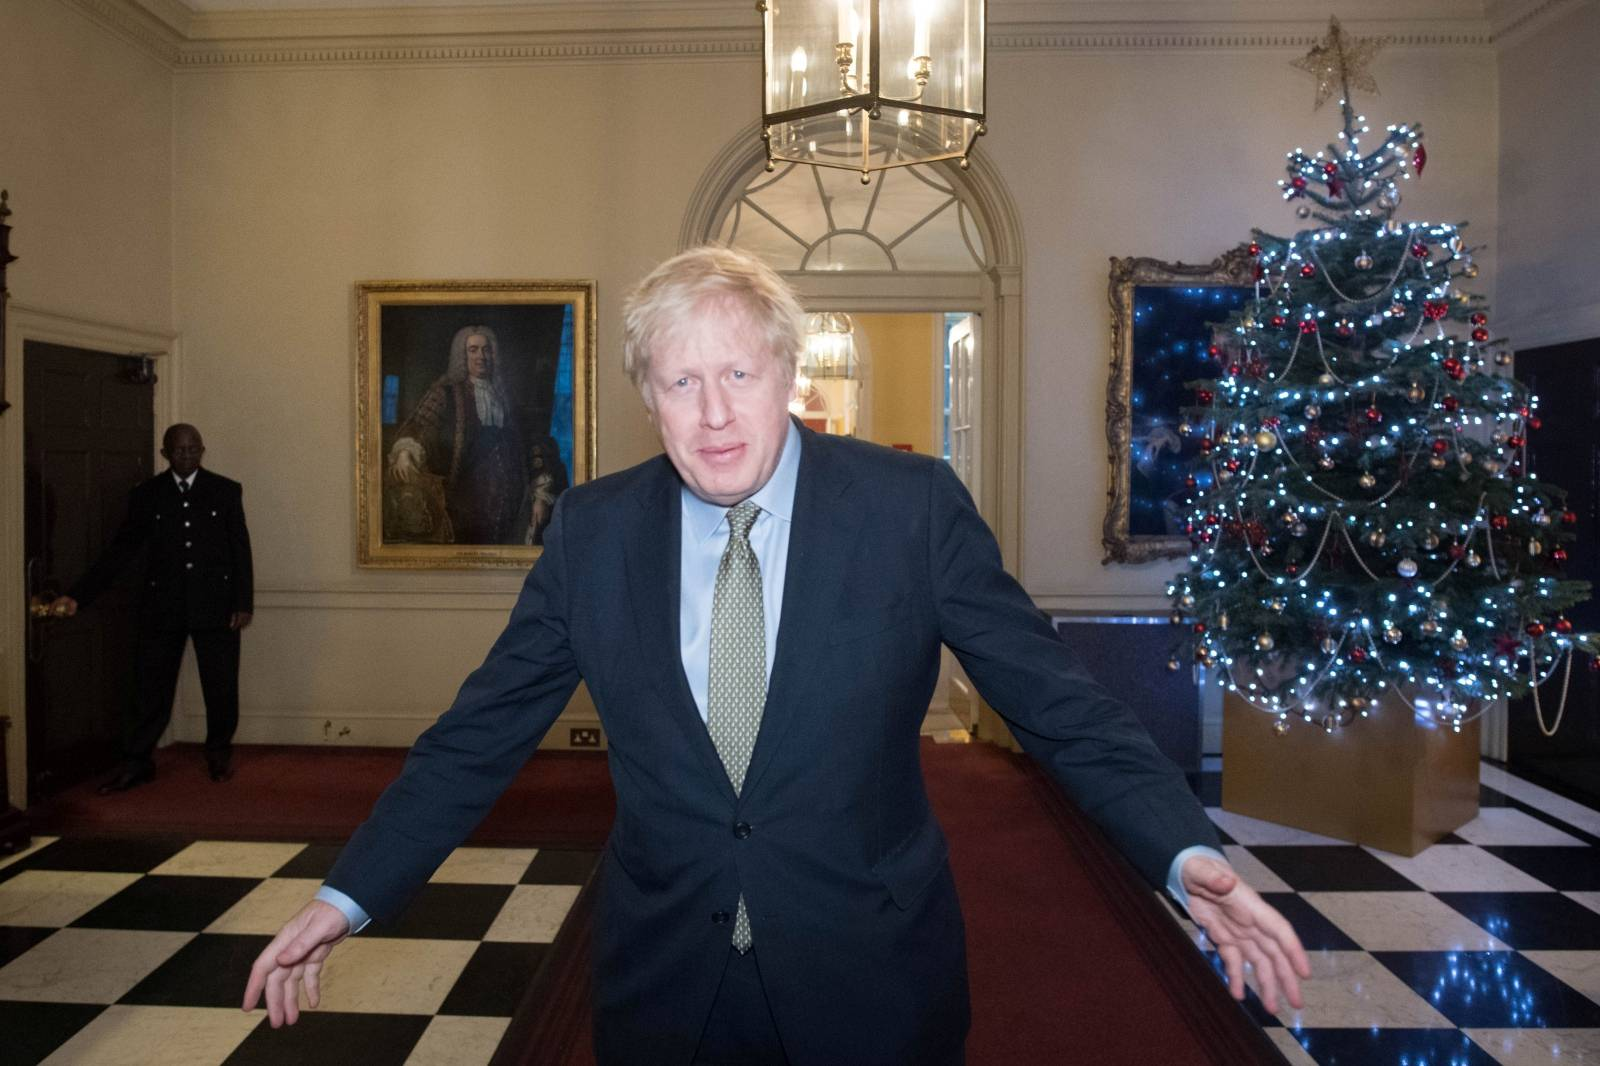 Britain's PM Johnson leaves Downing Street for Buckingham Palace, London